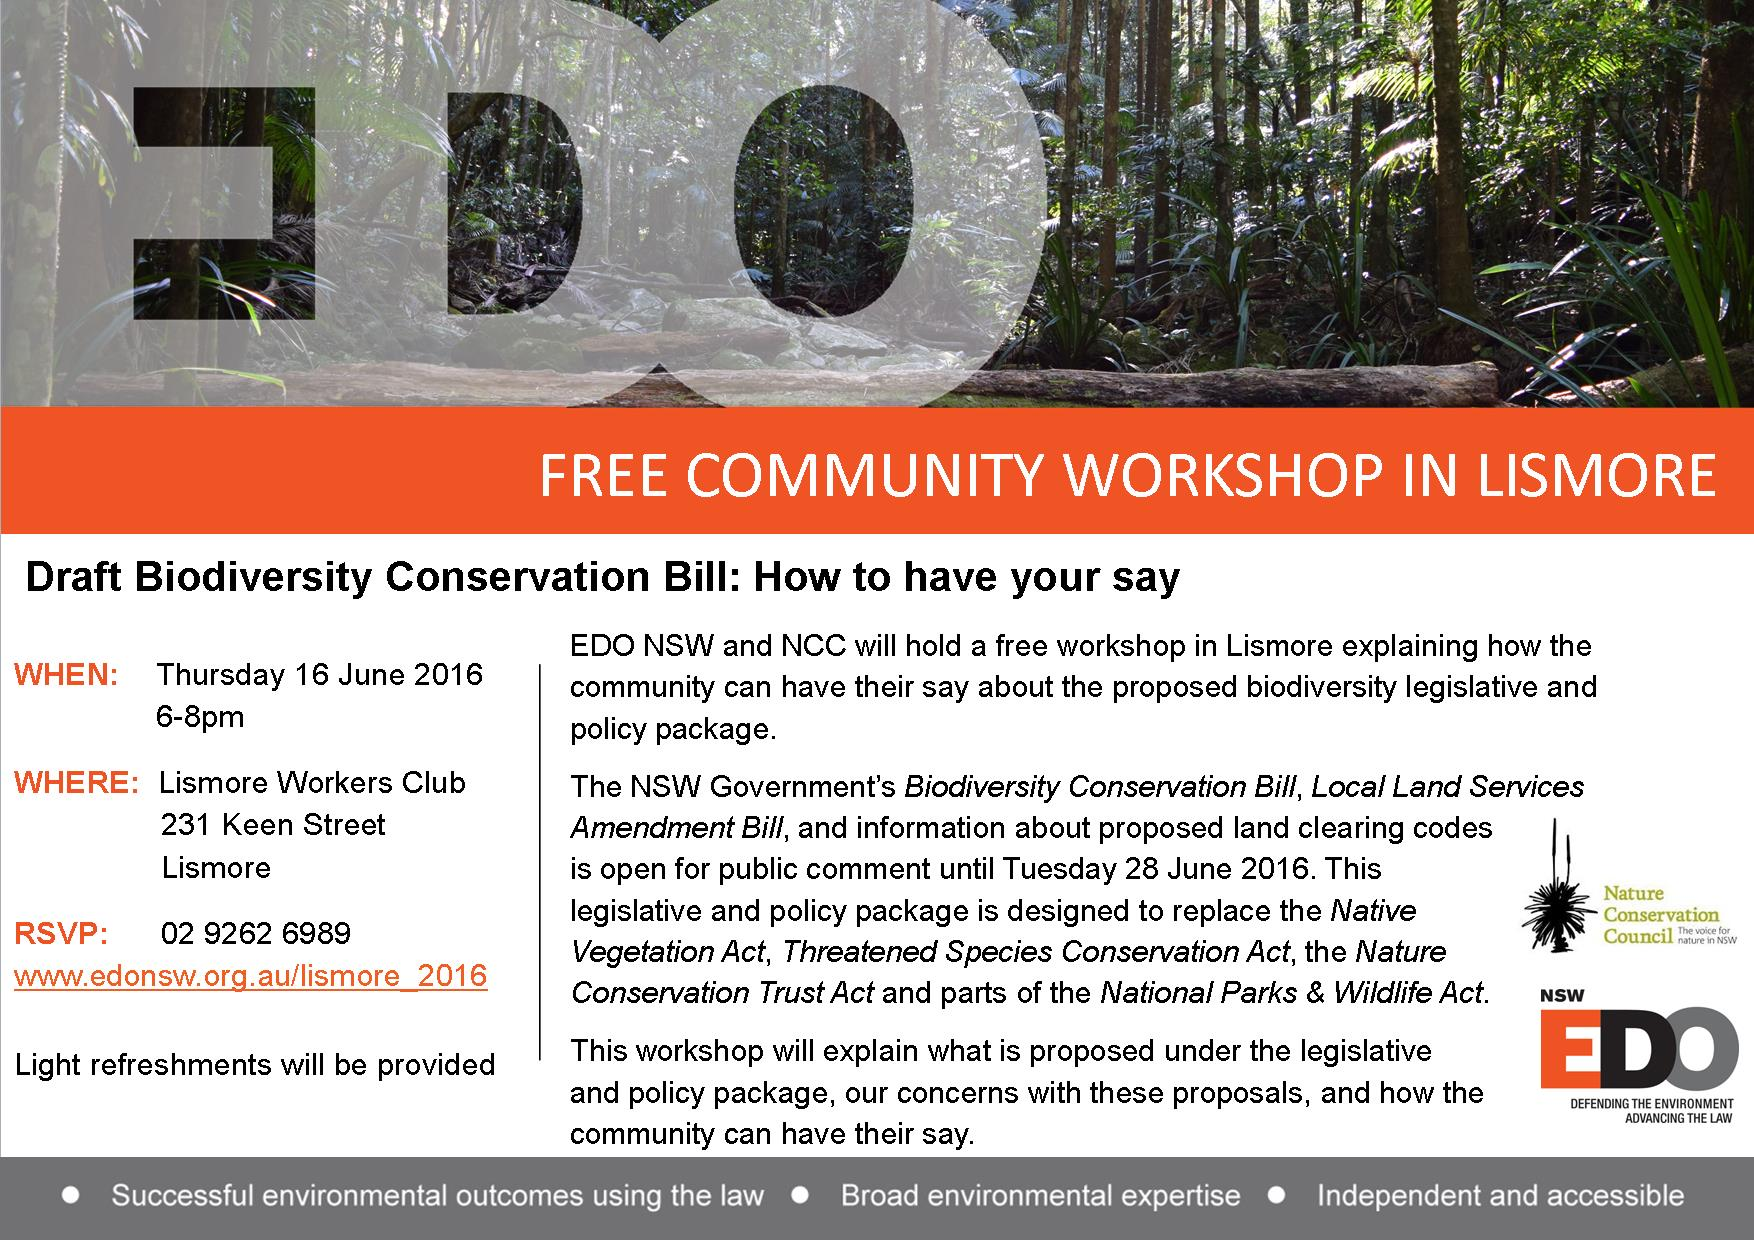 EDO_NSW_Lismore_Biodiversity_Workshop_Flyer.jpg